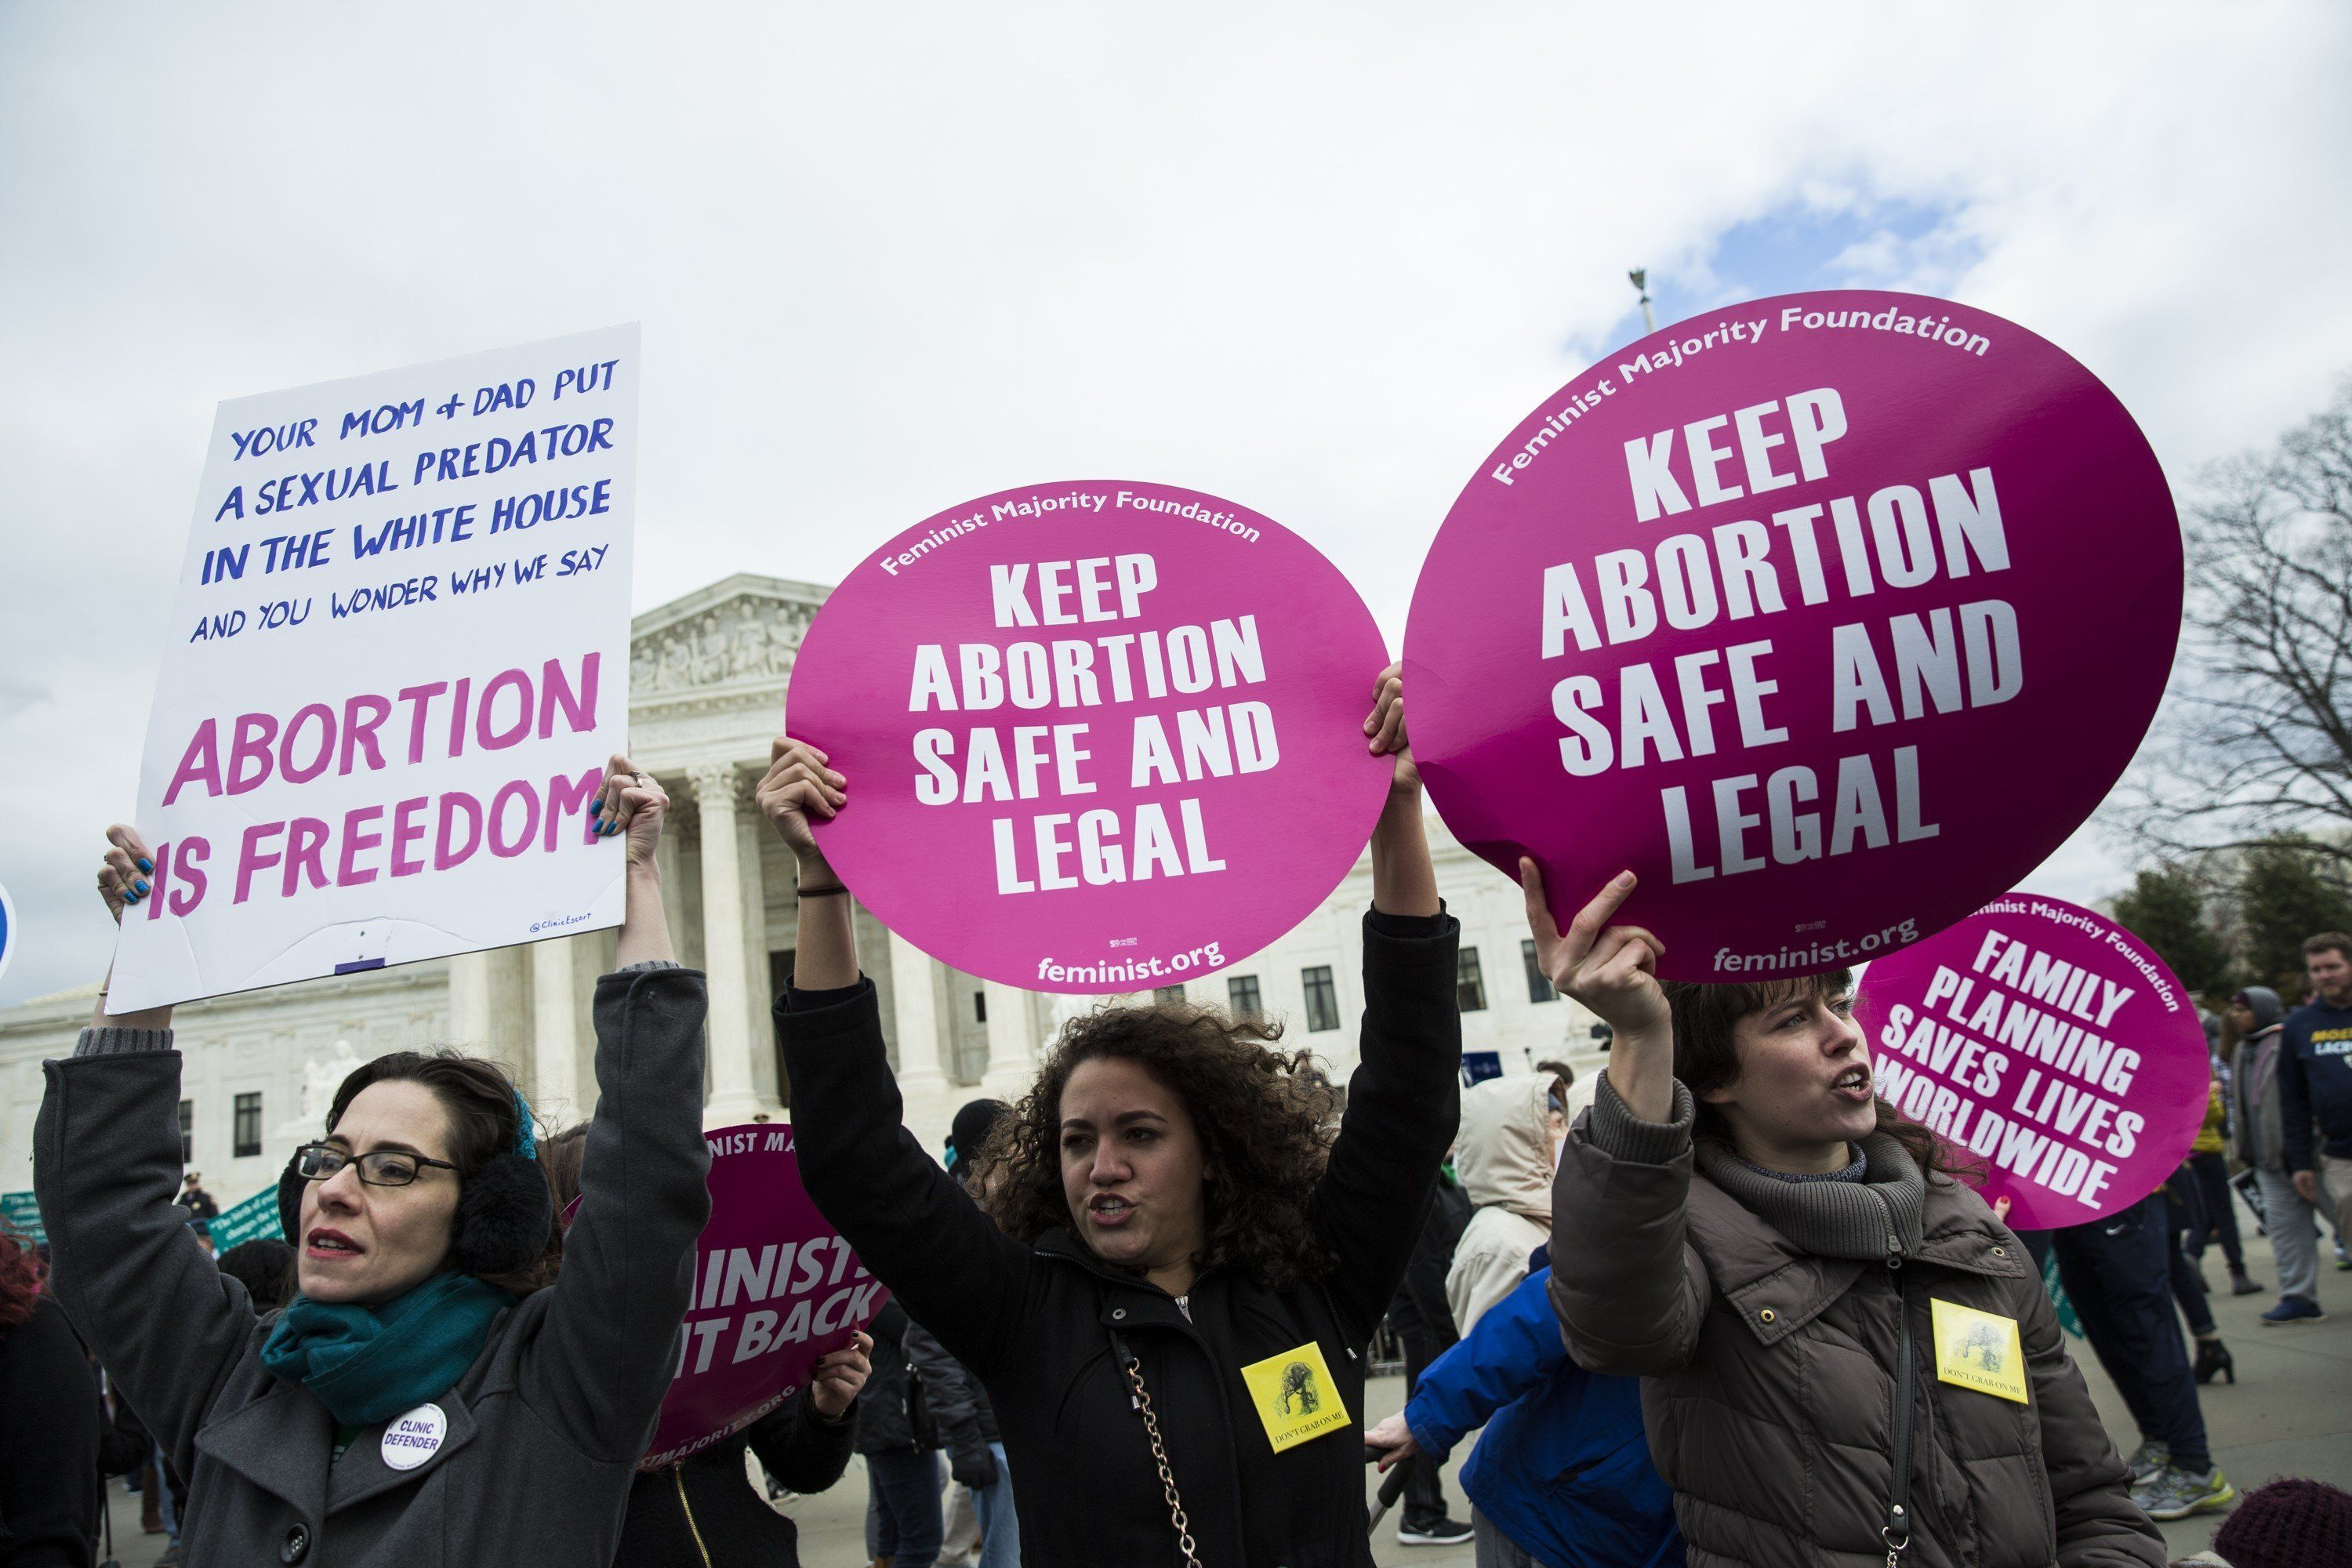 Pro-choice advocatescounter protest at the March for Life in Washington D.C. last month.